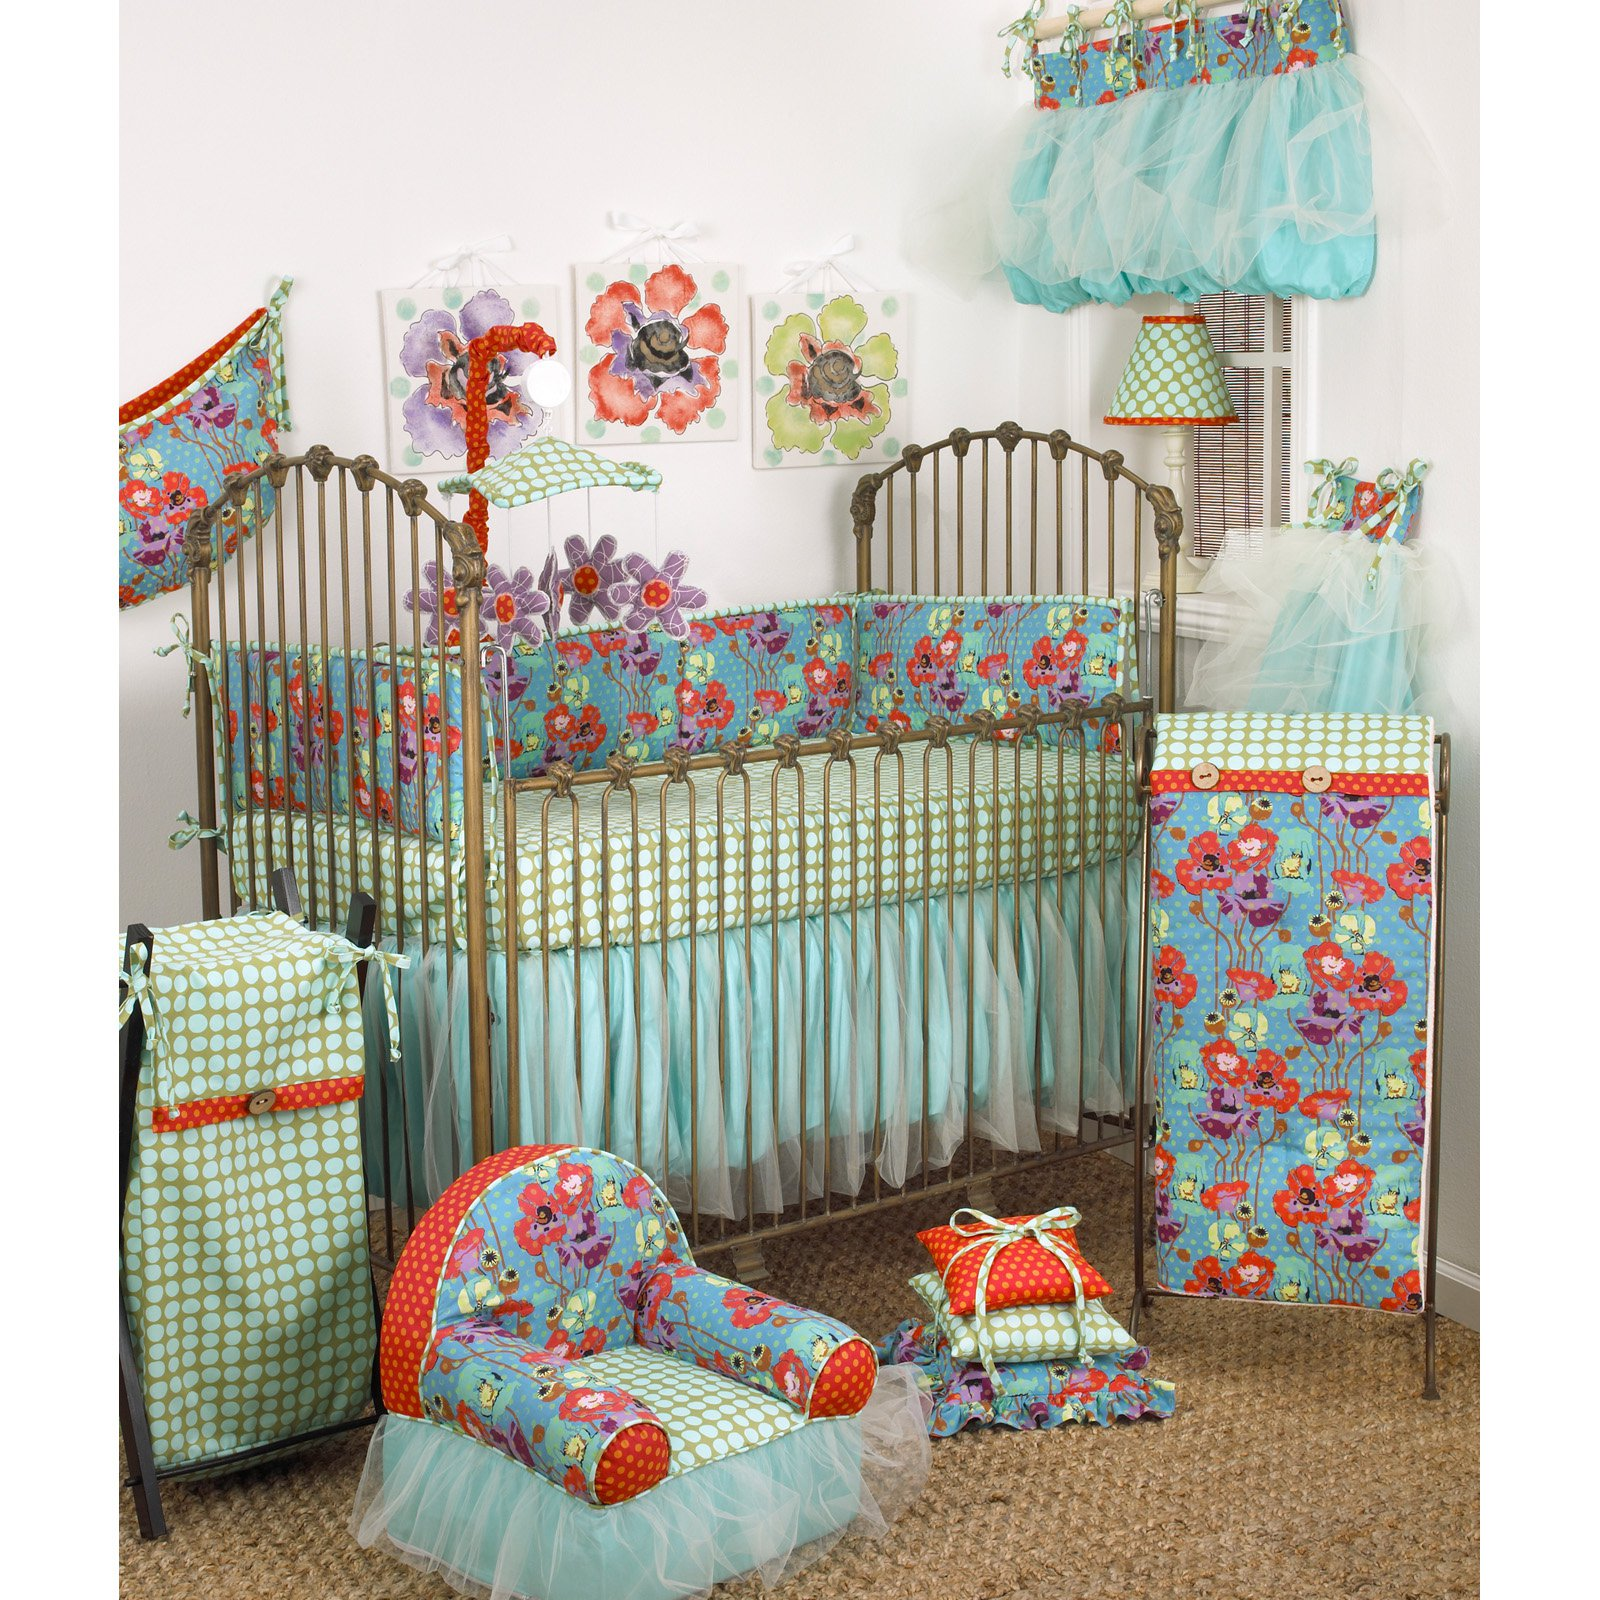 7 Piece Crib Bedding Set by Cotton Tale Designs